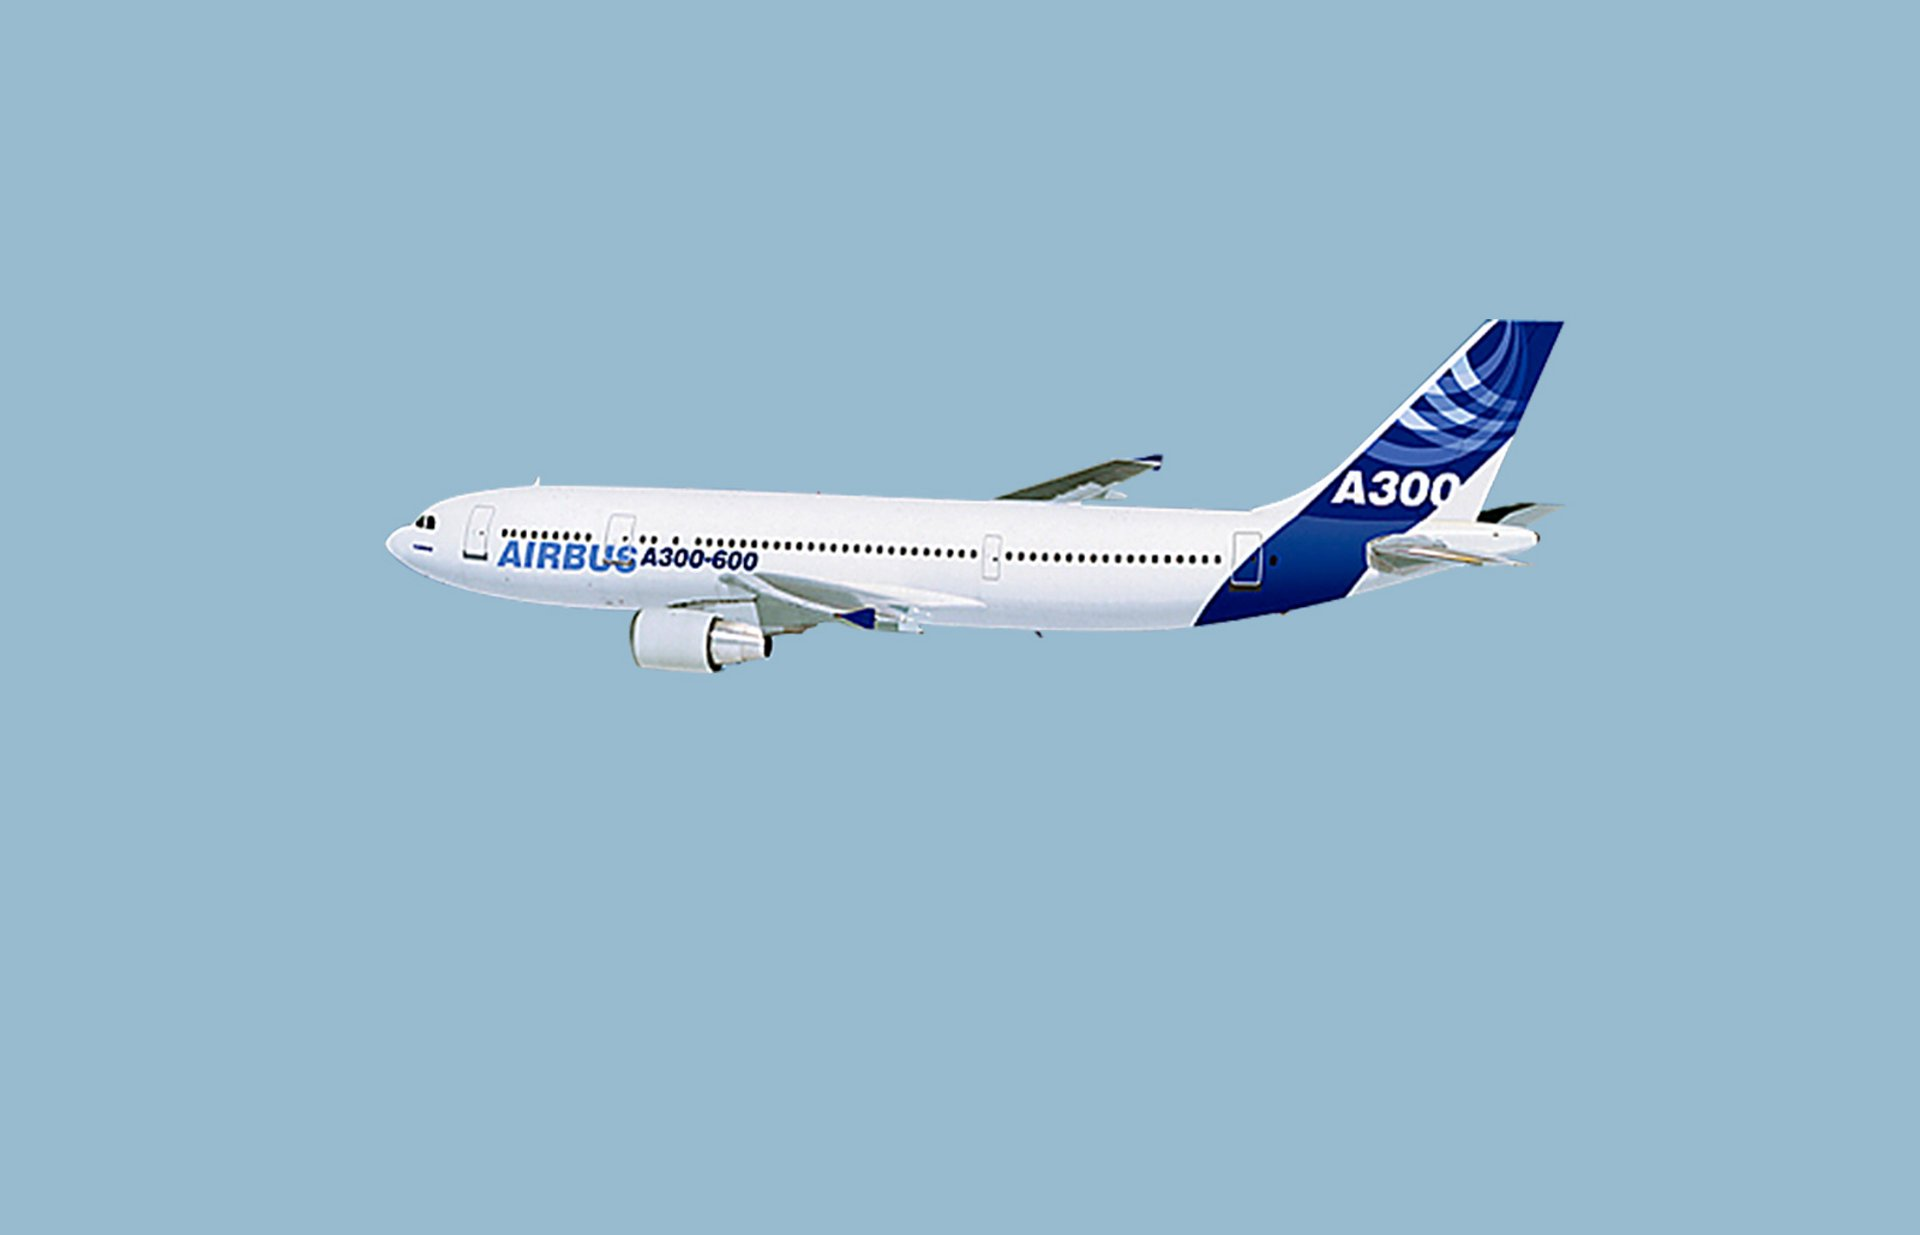 A300-600 - Previous Generation Aircraft - Airbus